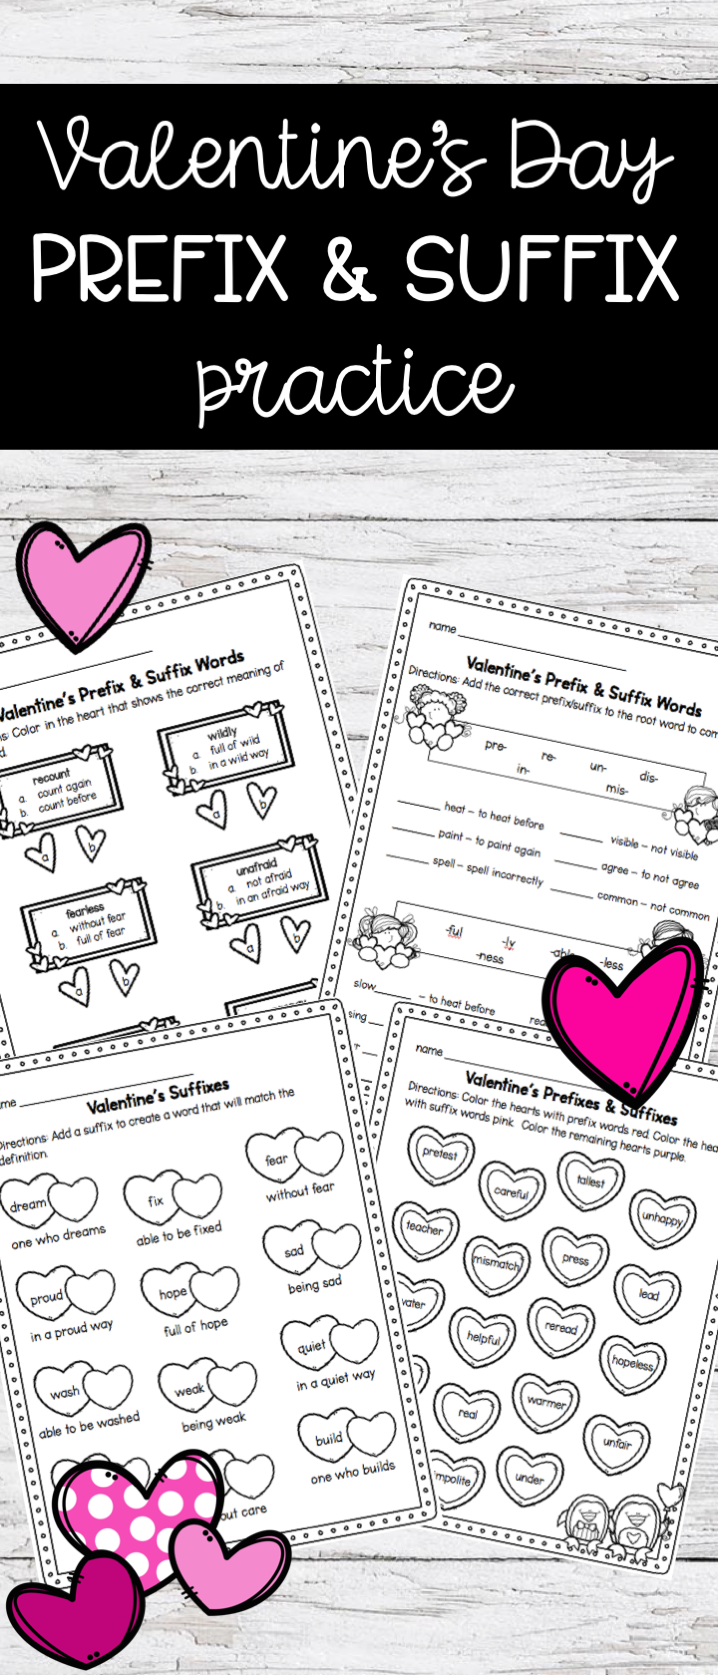 Valentine S Themed Prefix And Suffix Worksheets For February Skill Review Extra Practice Sub Plans Homework Prefixes Holiday Lessons Prefixes And Suffixes [ 1675 x 718 Pixel ]